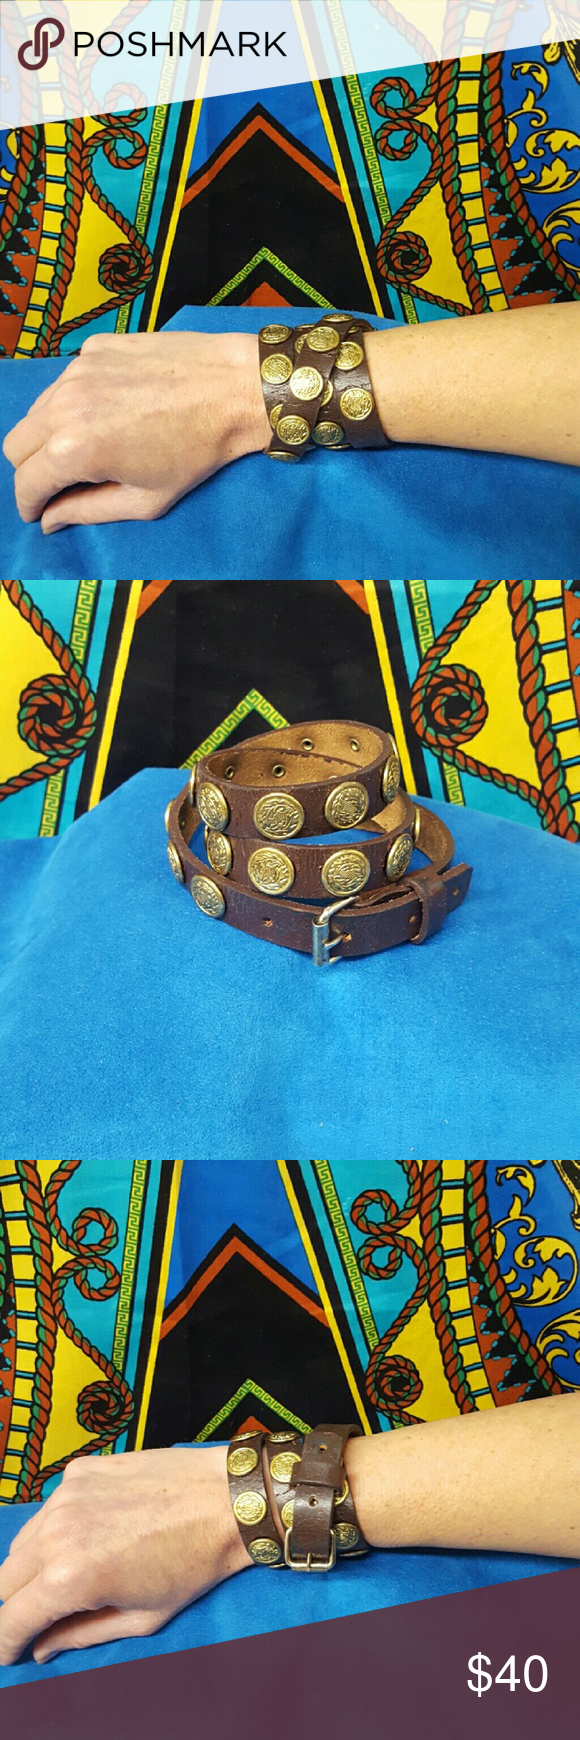 NEW ONE OF A KIND HAND MADE LEATHER WRAP CUFF NEW ONE OF A KIND DESIGN HAND MADE LEATHER WRIST WRAP CUFF. A leather wrap style braclet cuff. Vintage leather with vintage coin style embellishments. Buckle closure. Bohemian Cowgirl Collection!! Crystal's Cuffs Jewelry Bracelets